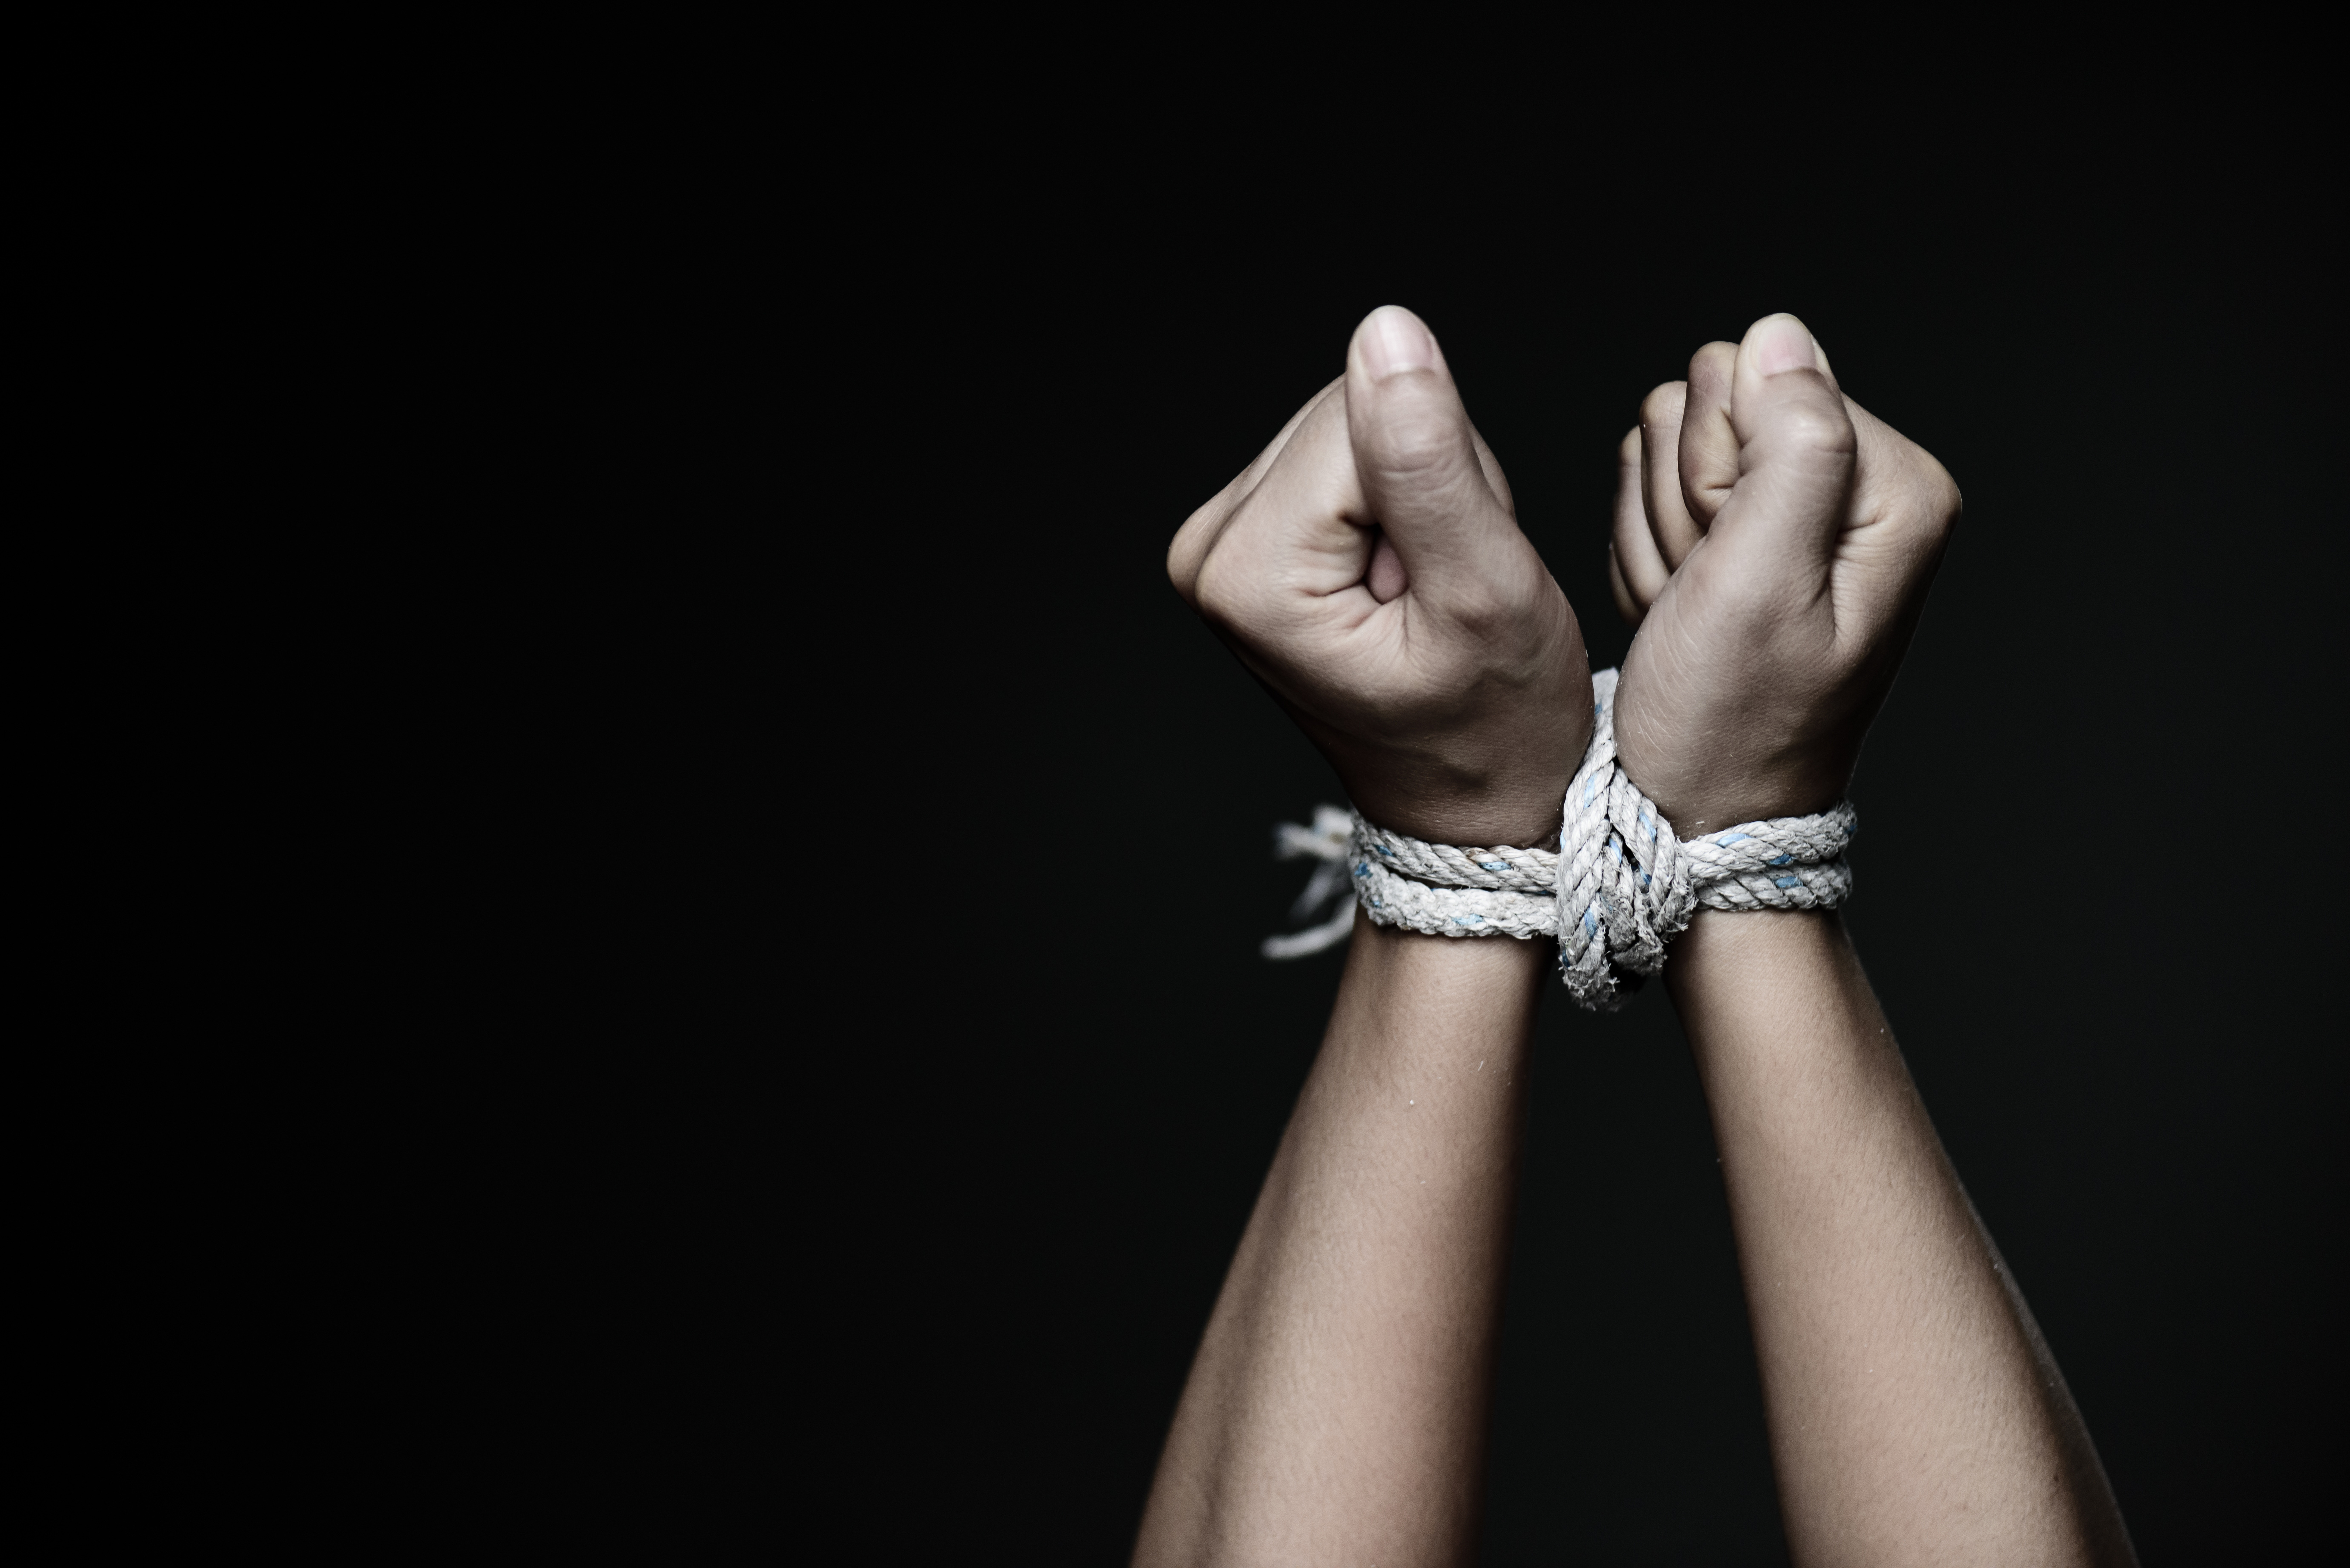 How to protect yourself from human trafficking this festive season